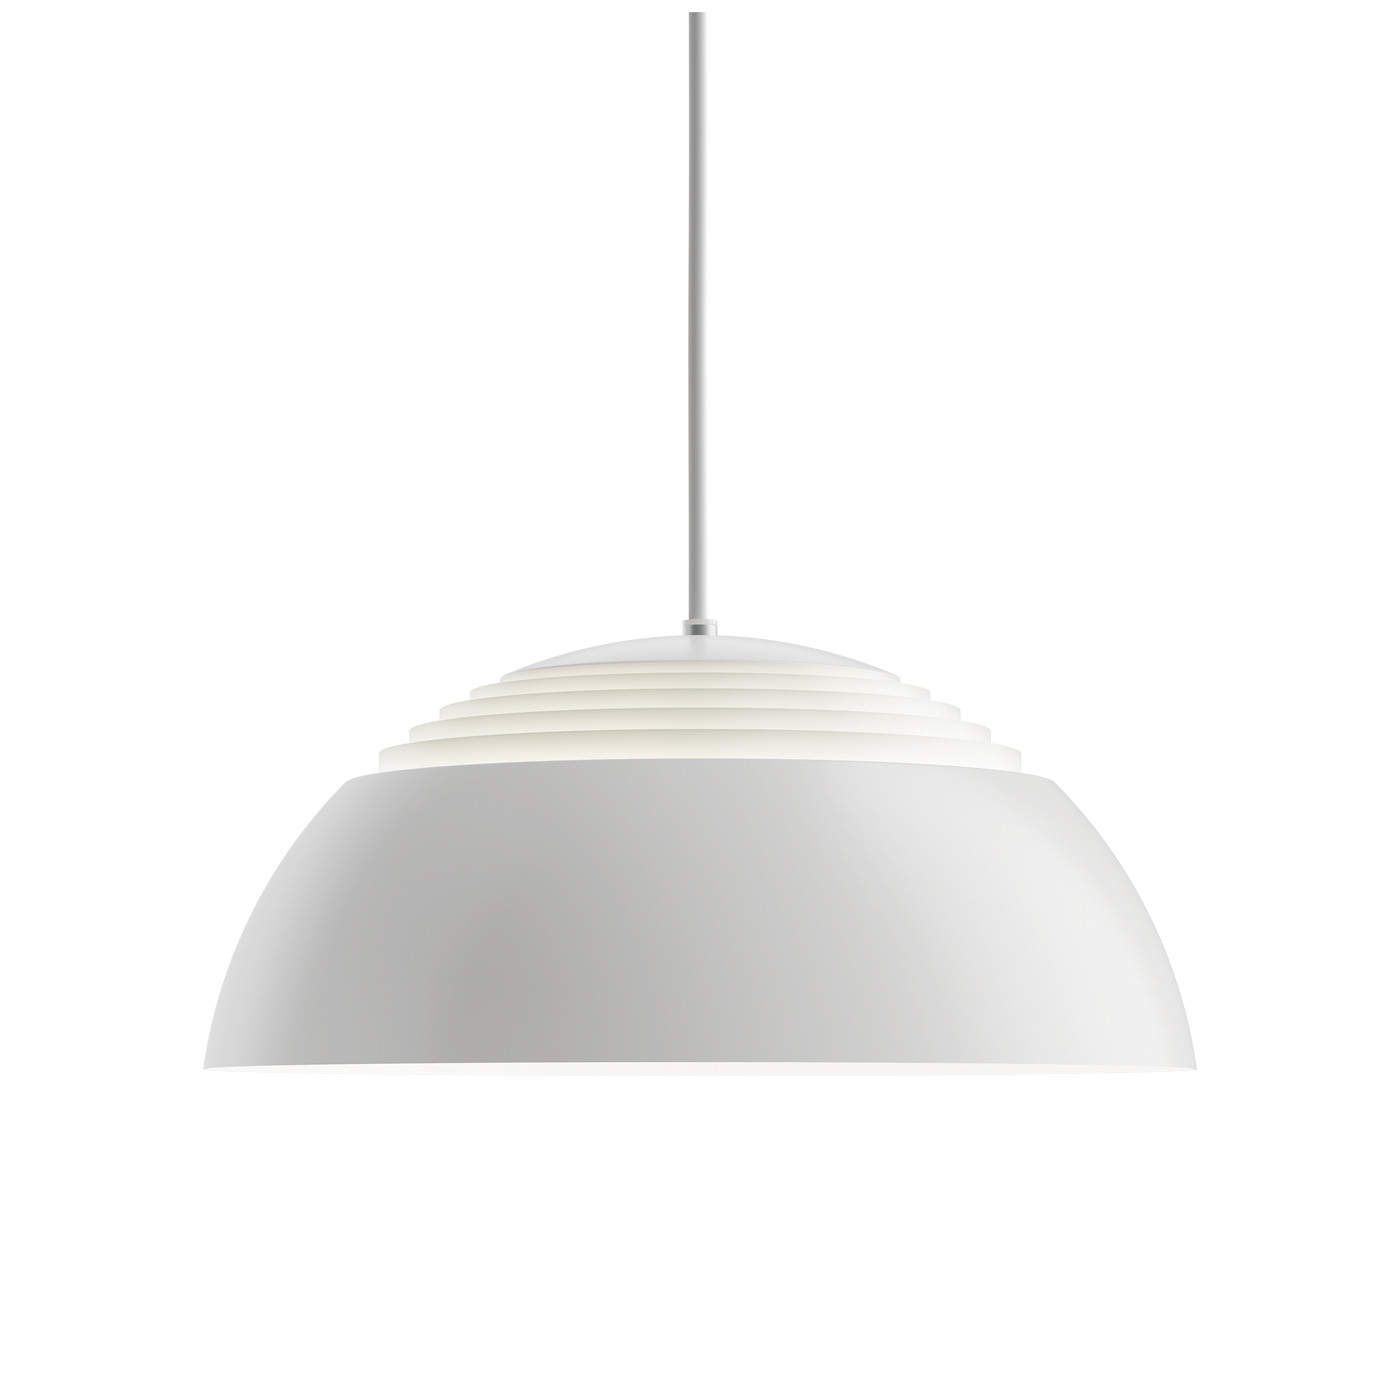 Louis Poulsen AJ Royal 370 LED